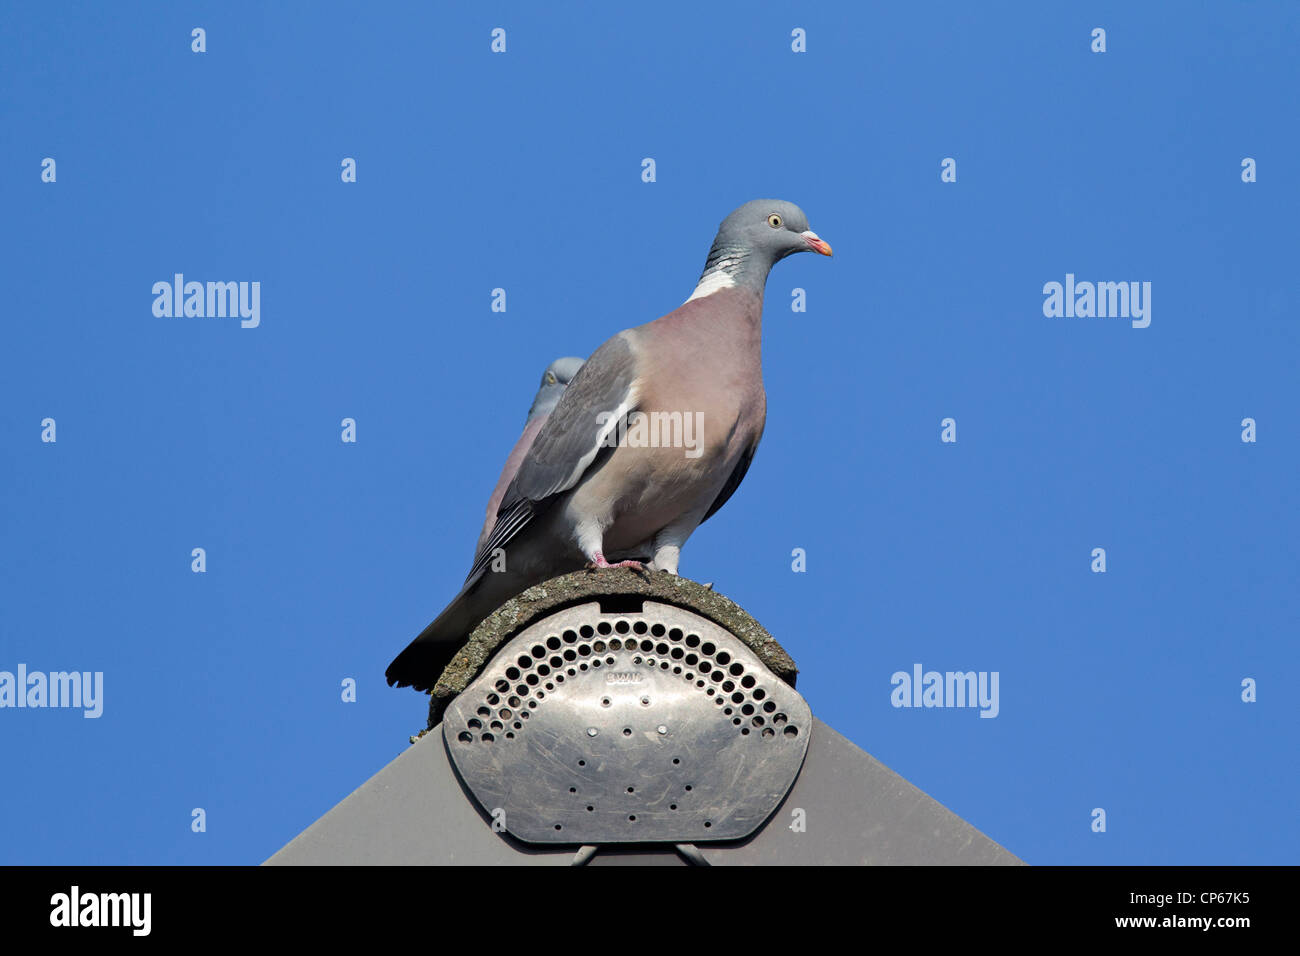 Common Wood Pigeon (Columba palumbus) perched on rooftop, Germany - Stock Image